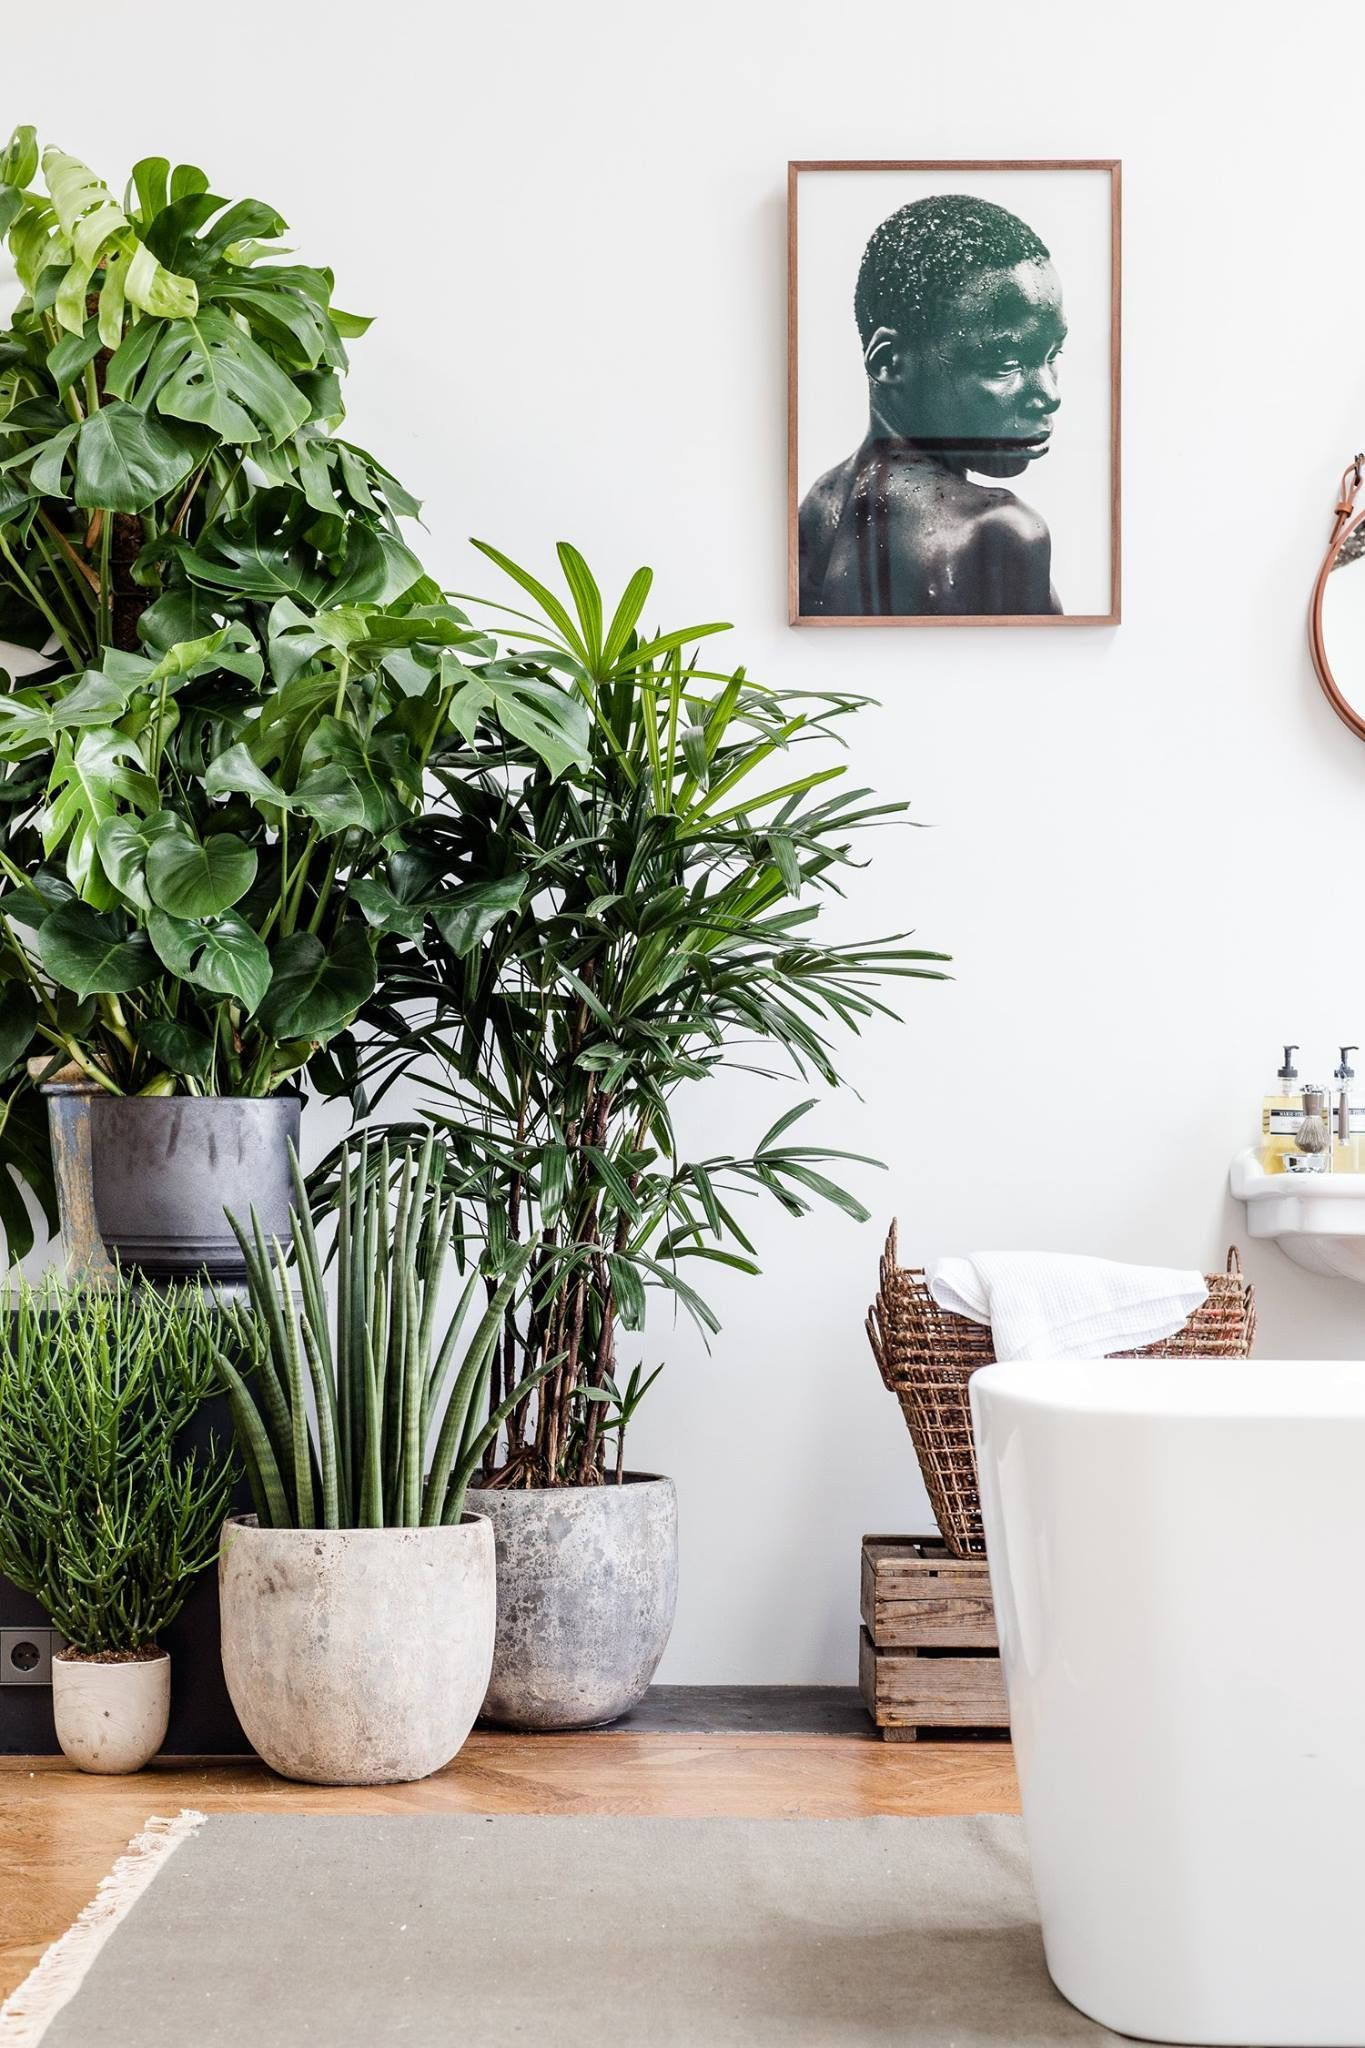 9 Best Feng Shui Houseplants for Good Vibes